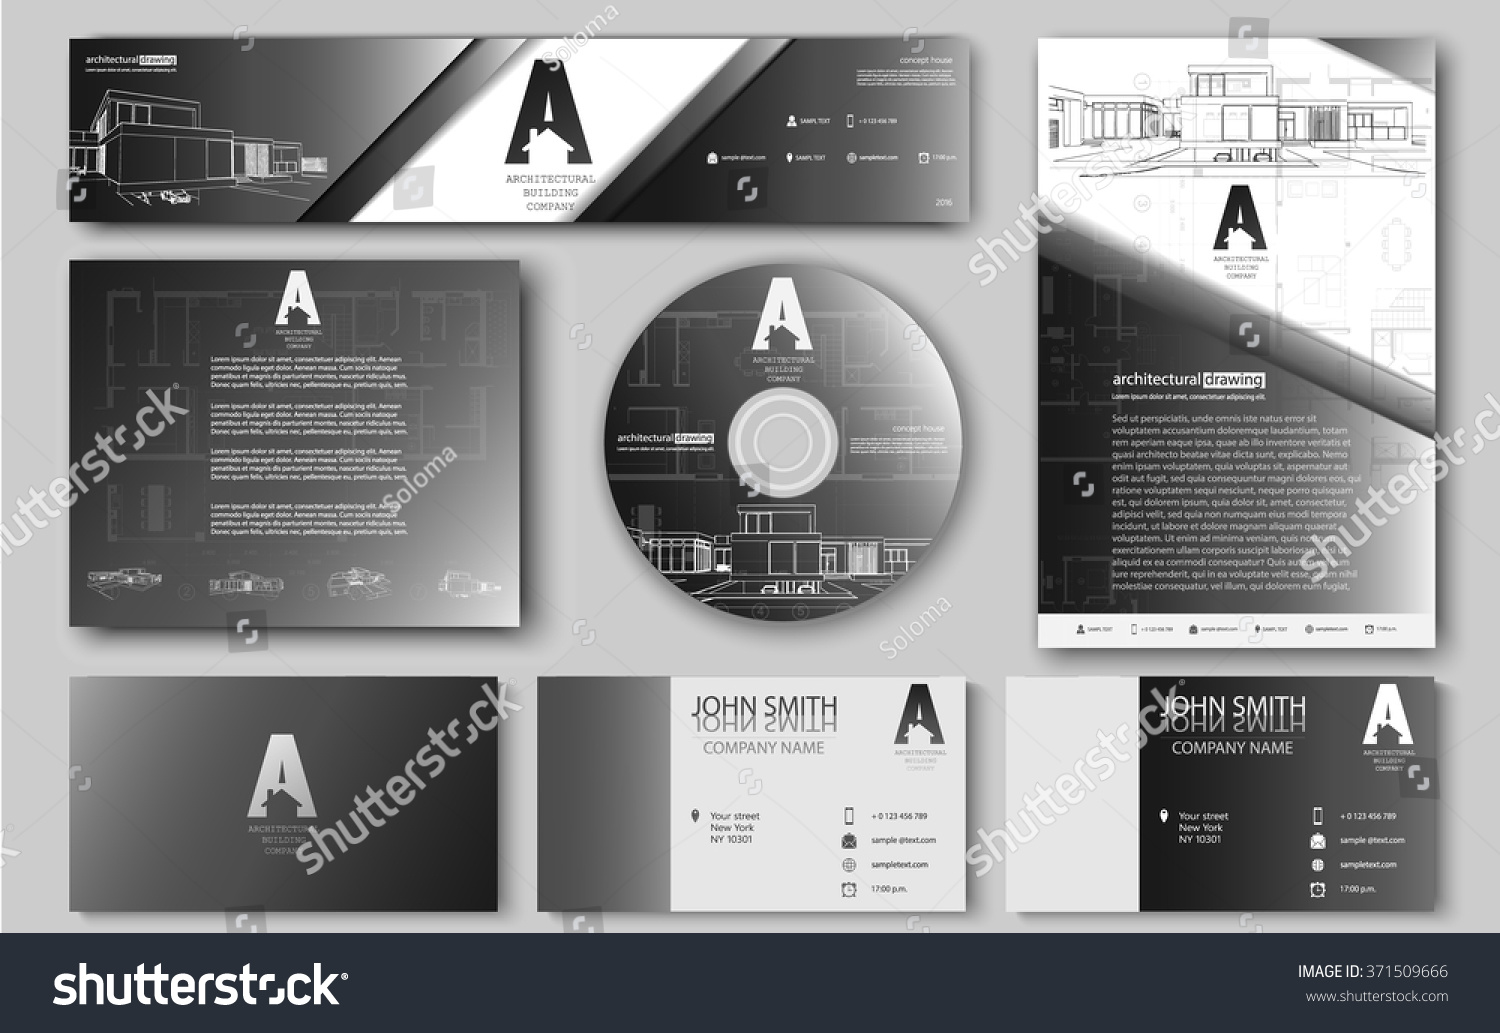 Business cards design blueprint sketch architectural stock vector business cards design blueprint sketch architectural stock vector 371509666 shutterstock malvernweather Choice Image